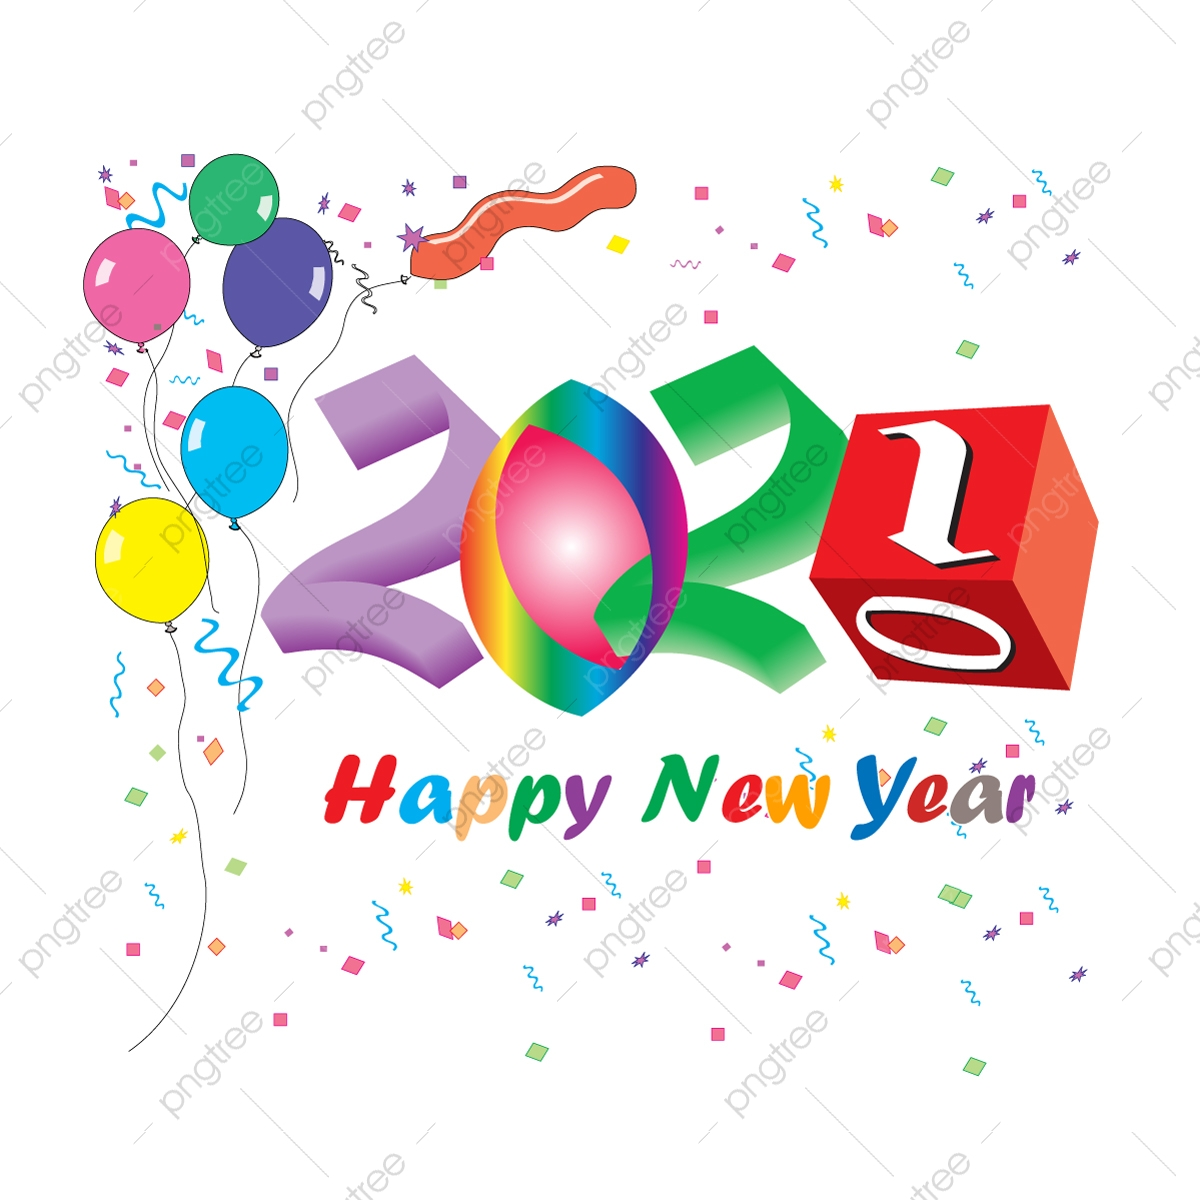 Happy New Year 2021 Celebrate Celebration Communication Png And Vector With Transparent Background For Free Download